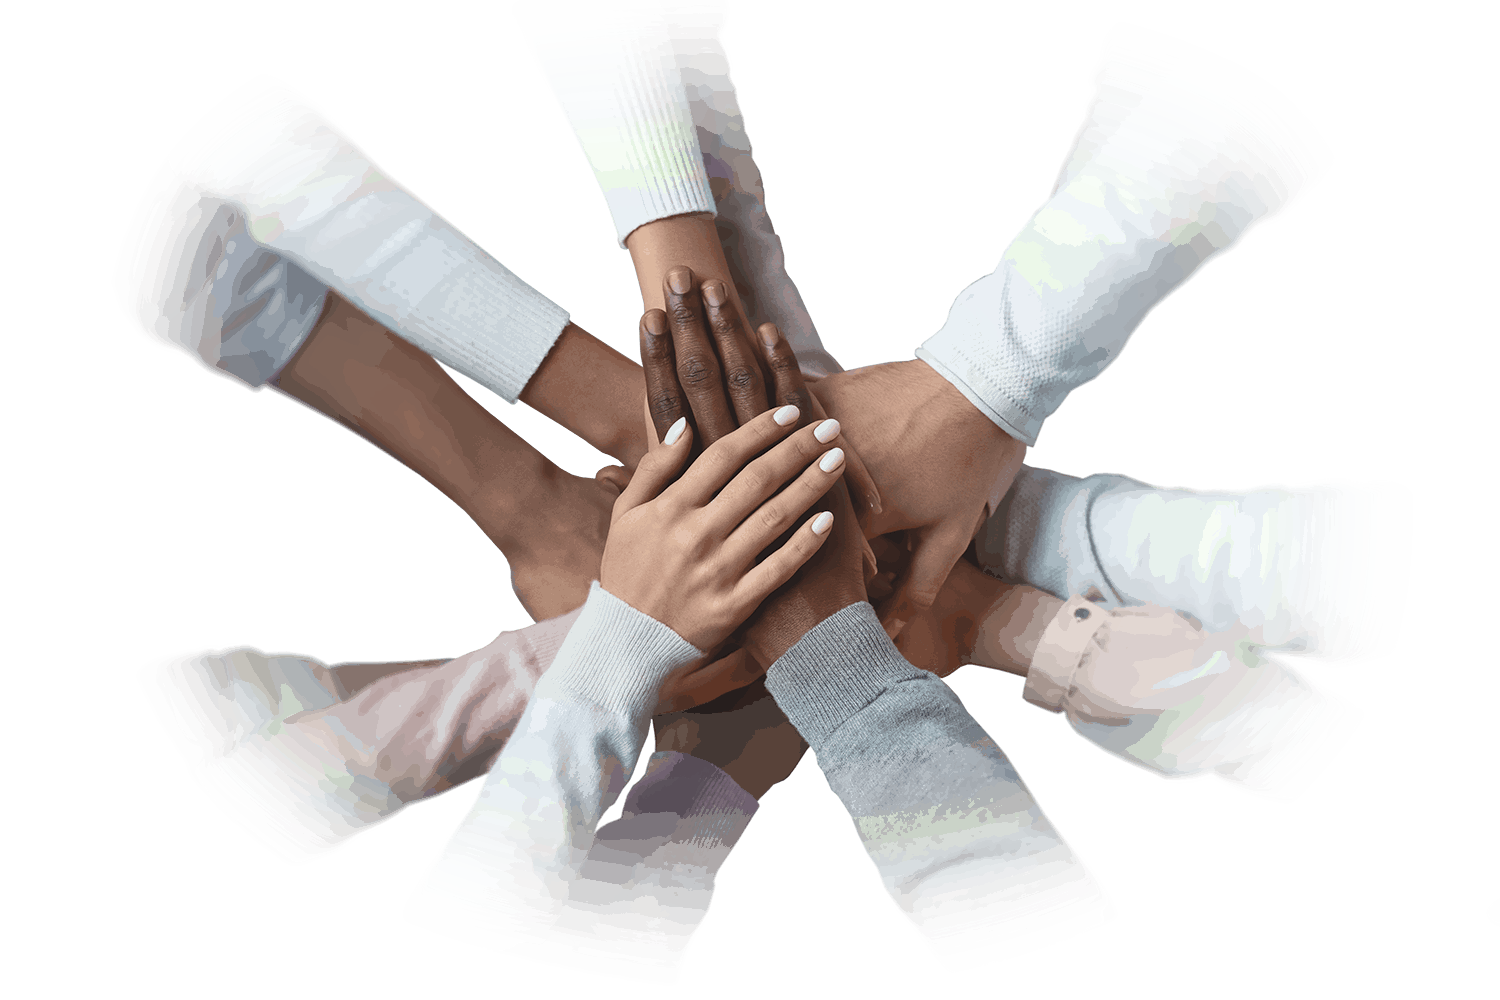 ESG-Social a diverse group of hands all huddled together